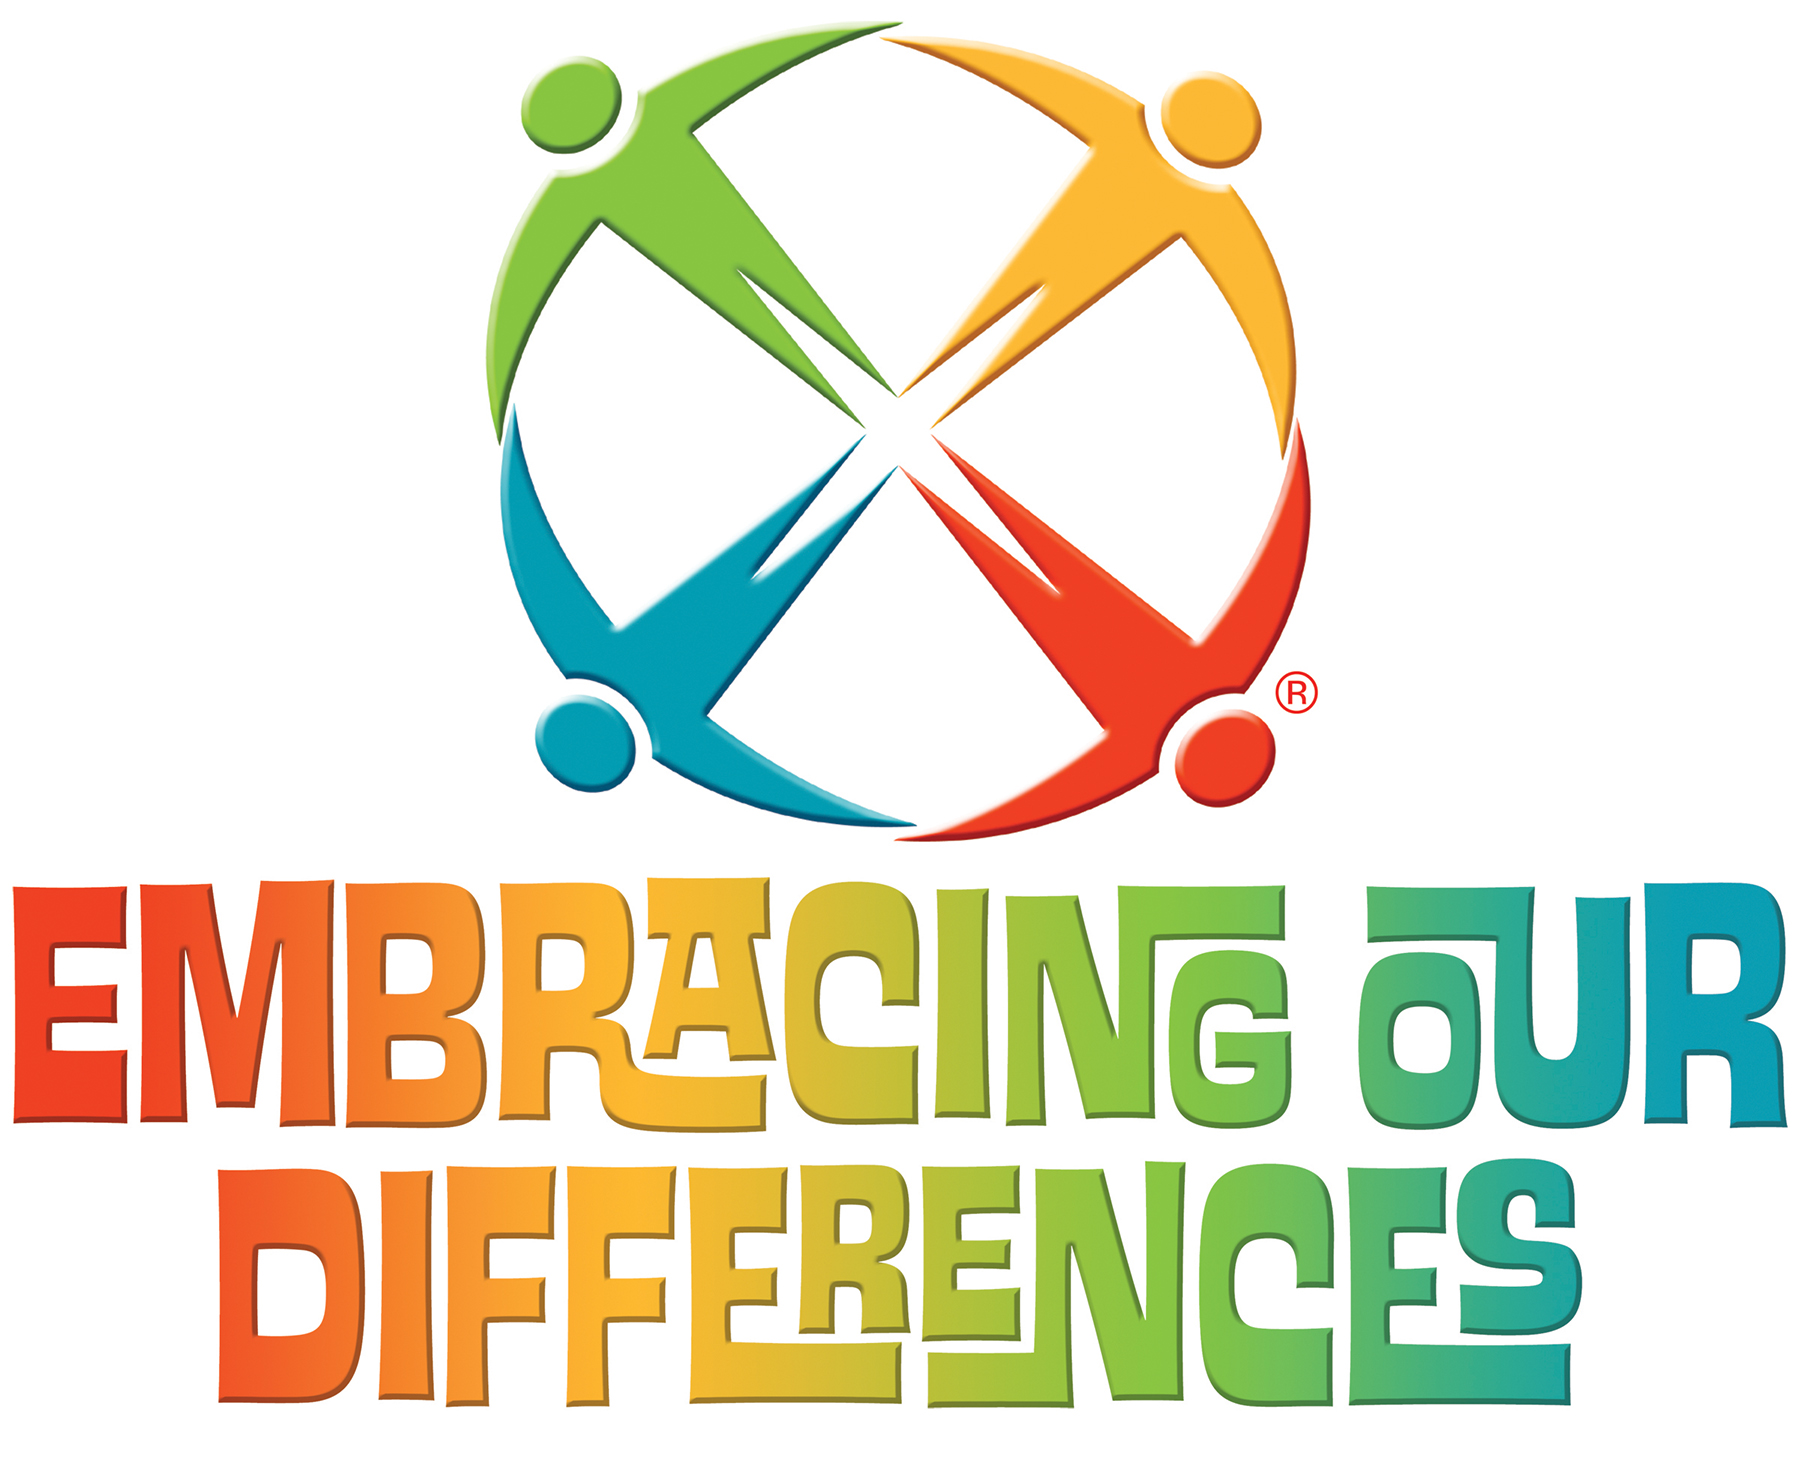 Embracing Our Differences International Art Exhibit Celebrating Diversity 2019 - logo